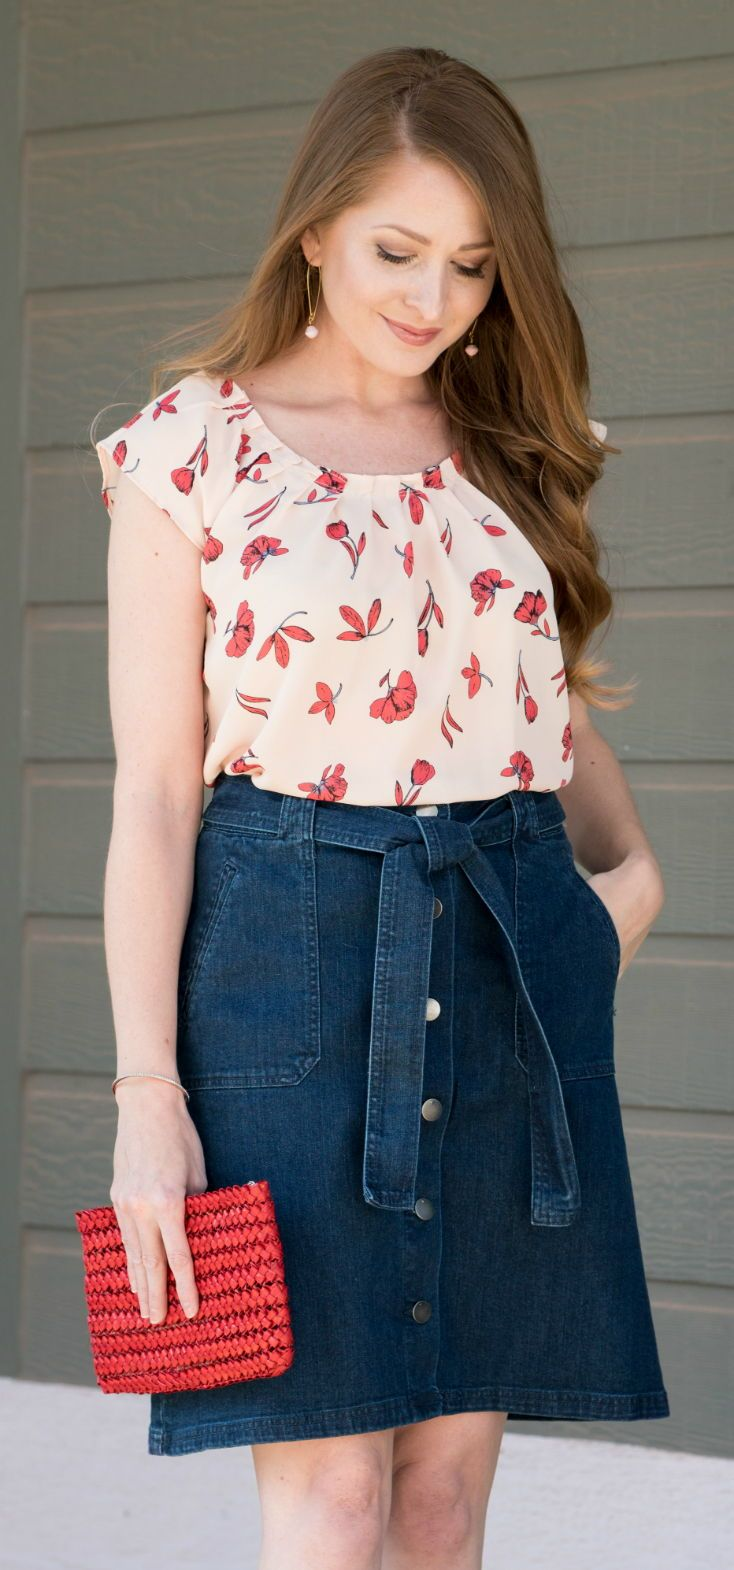 Denim Button Front Skirt / LC Lauren Conrad Floral Top / Spring Style / Fashion / Outfit Ideas